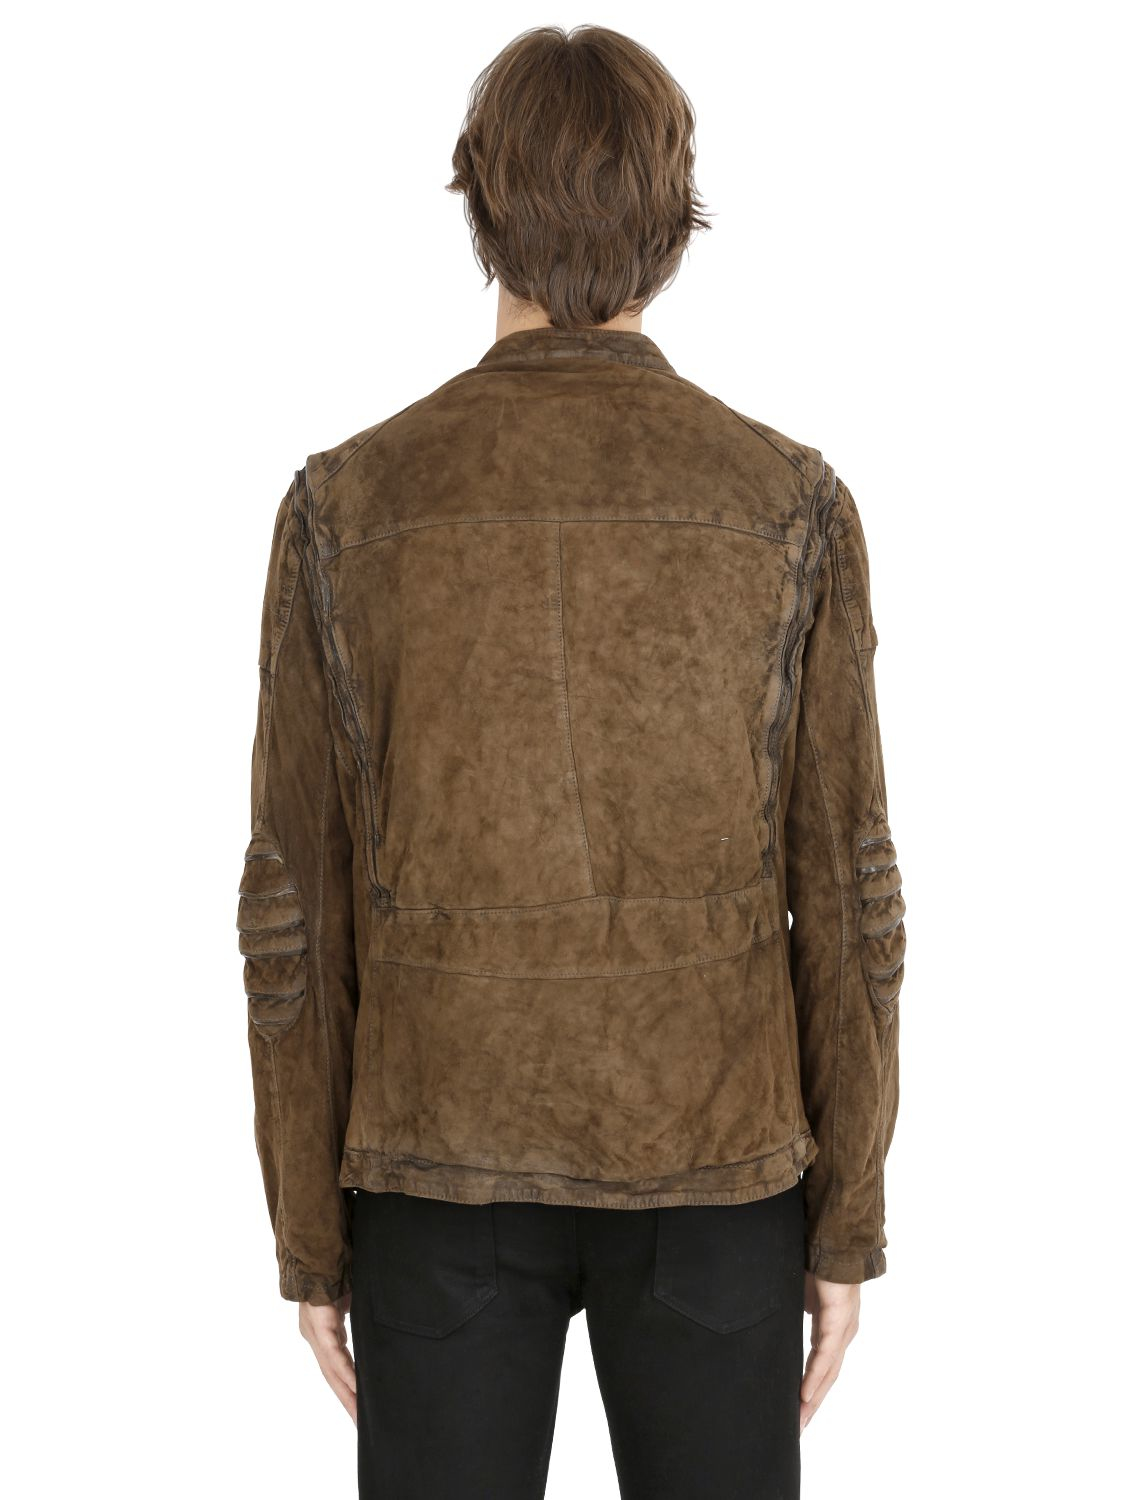 Giorgio Brato Vintage Washed Reversed Leather Jacket in Brown for Men